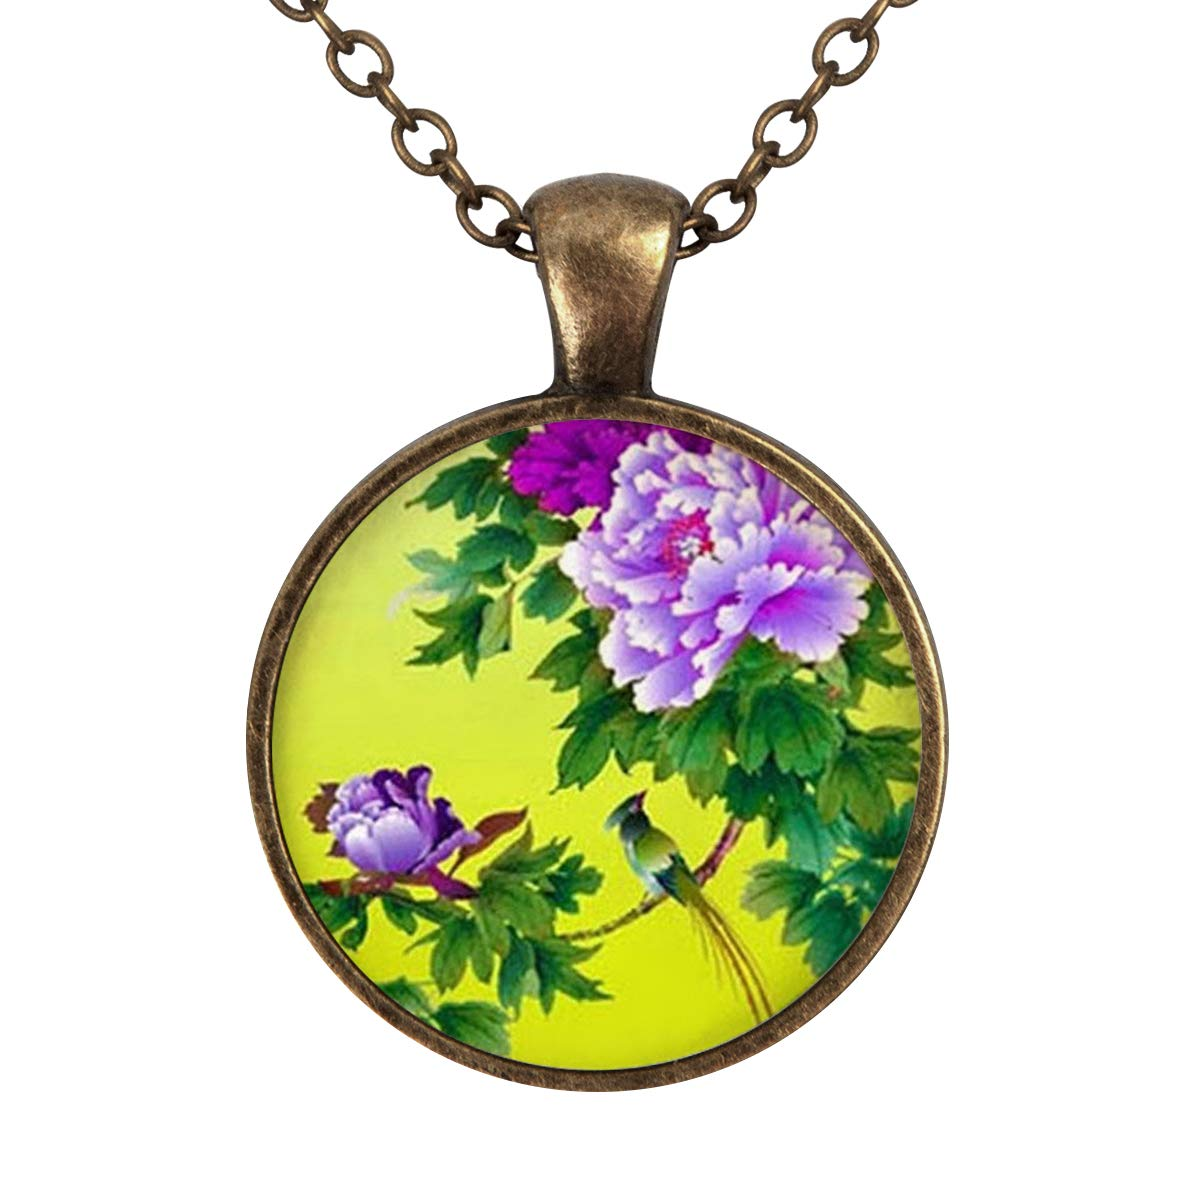 Lightrain Peony Flower Pendant Necklace Vintage Bronze Chain Statement Necklace Handmade Jewelry Gifts